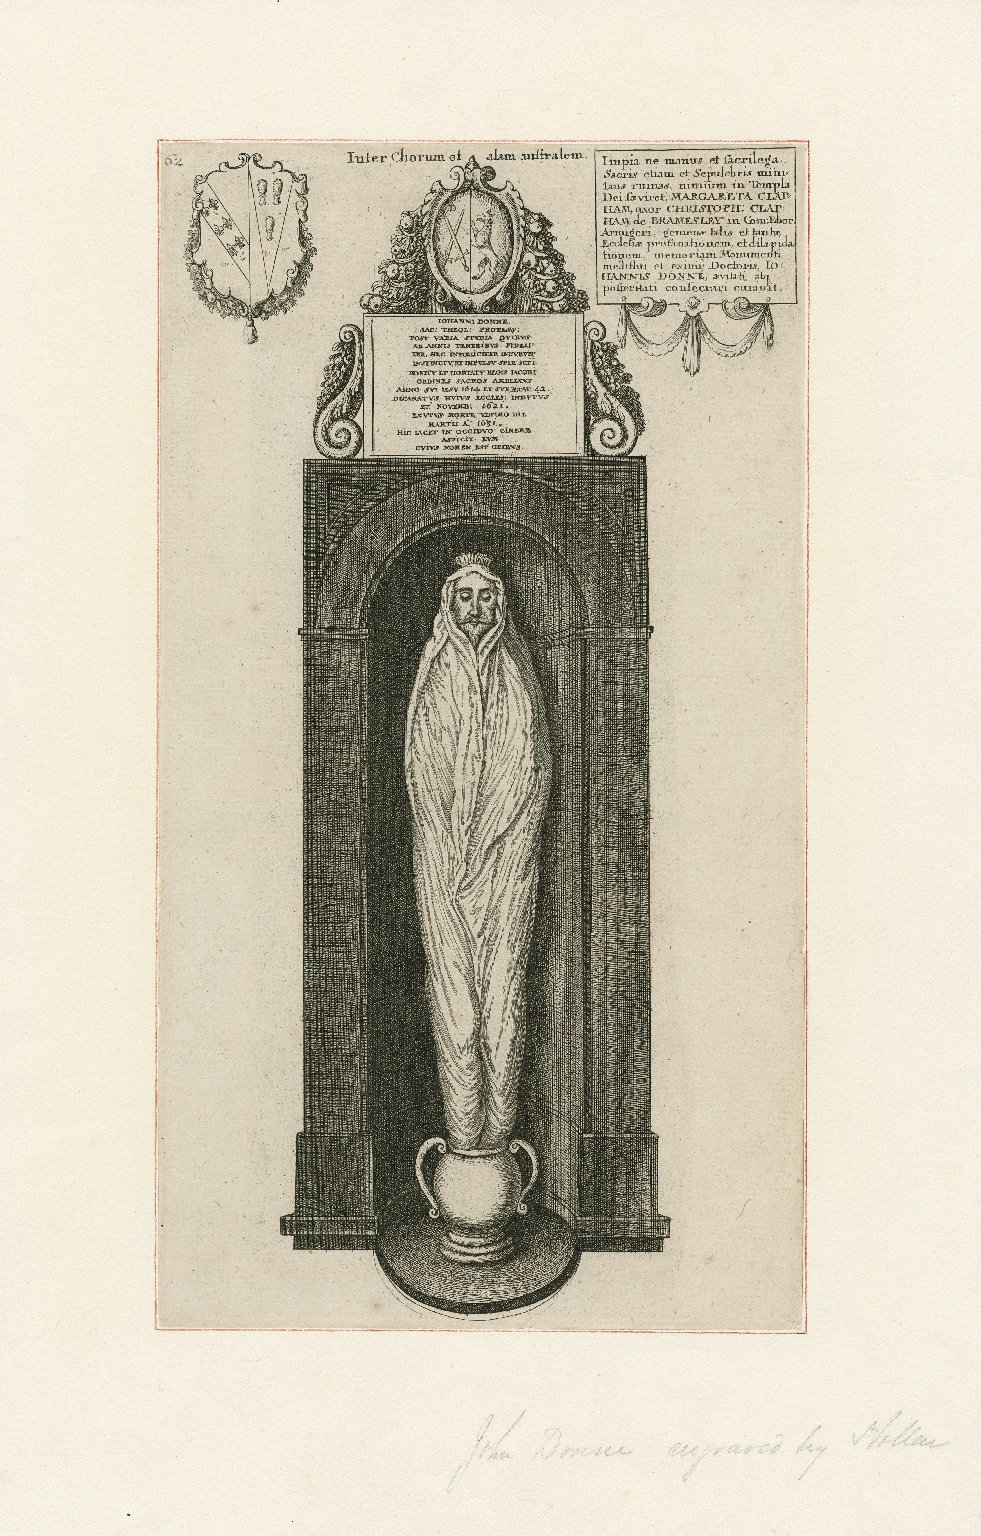 [John Donne, his monumental effigy, now in the crypt of St. Paul's Cathedral] [graphic] / [Wenceslaus Hollar].